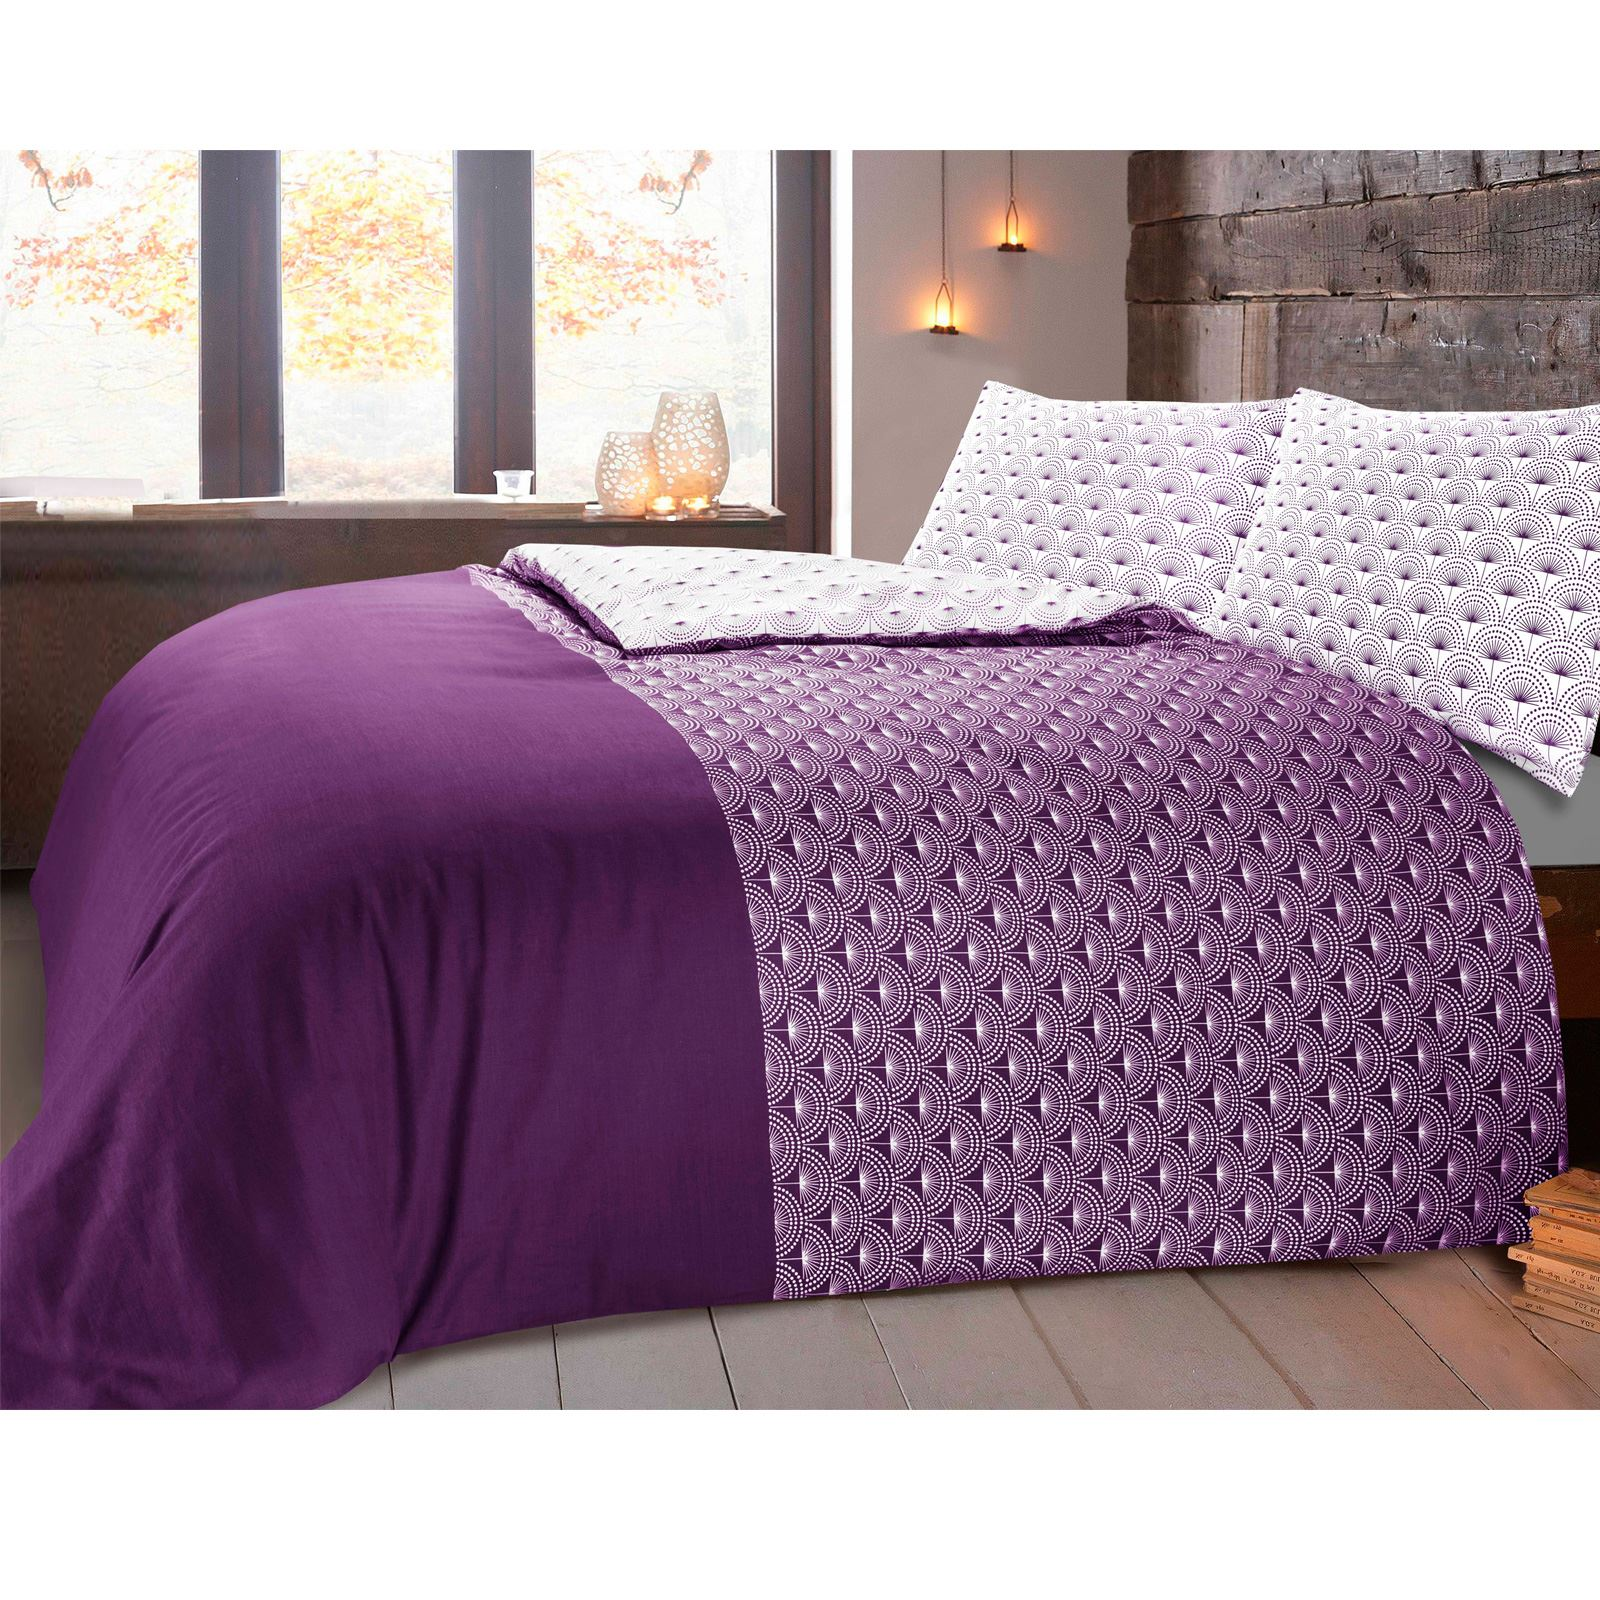 Nimsay-100-Cotton-Duvet-Quilt-Cover-Bedding-Set-Single-Double-Super-King-Sizes thumbnail 11